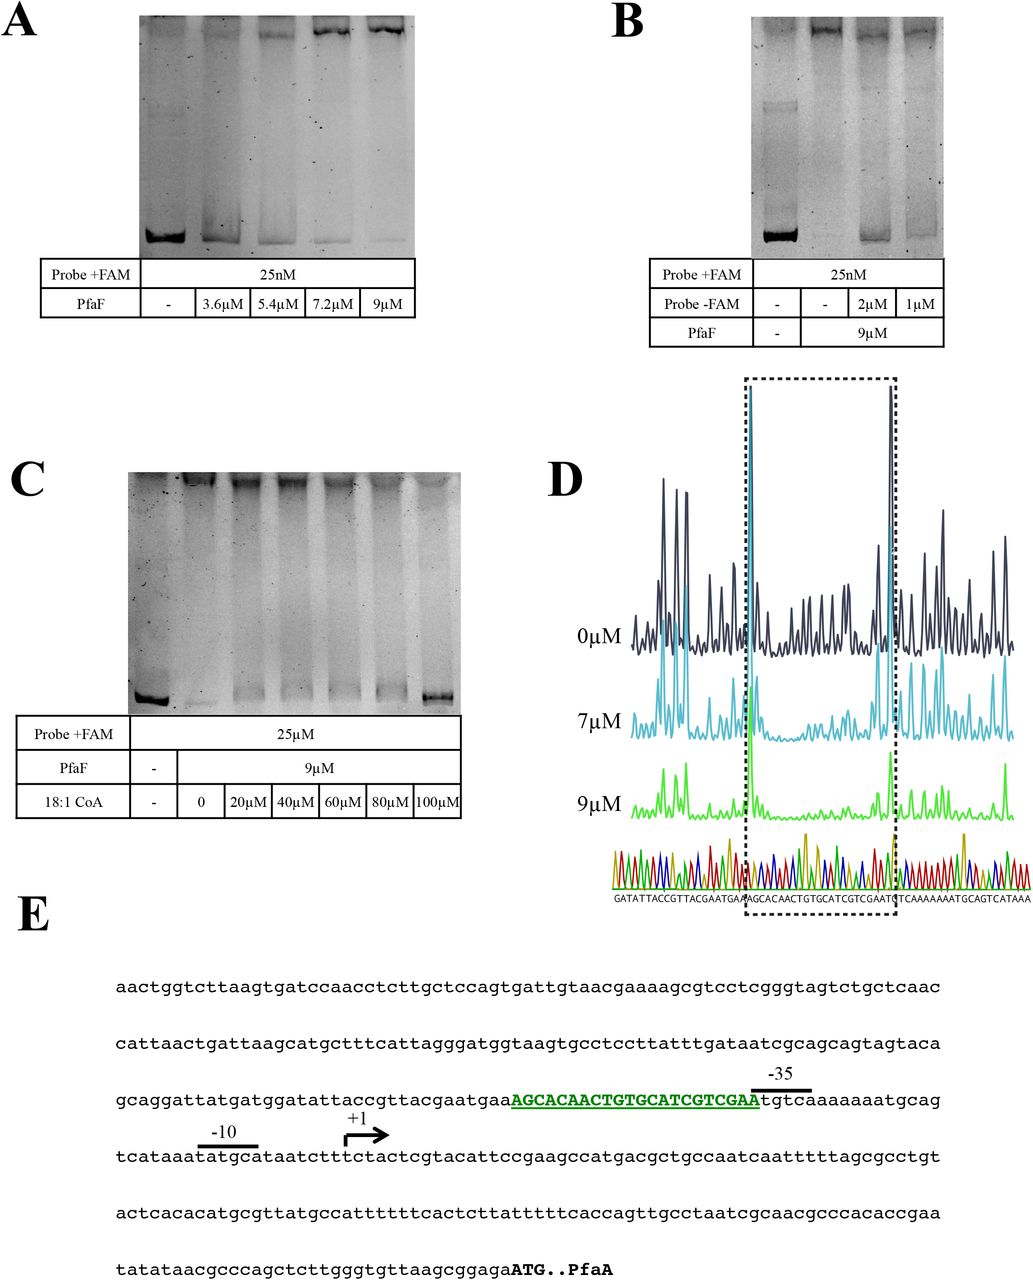 Characterization of PfaF binding to the pfaA promoter. (A) Electrophoretic mobility shift assay demonstrating PfaF binding to the pfaA promoter in a concentration dependent manner. (B) Binding of FAM-labeled probe (+FAM) is partially inhibited by the inclusion of molar excess of unlabeled probe (-FAM) indicating that PfaF binding is specific. (C) Addition of oleoyl-CoA at the indicated concentrations reverses the binding of PfaF to the probe in a concentration dependent manner. (D) DNase I footprinting analysis of PfaF binding to pfaA promoter. Purified PfaF was added at the indicated concentrations and subjected to DNase I digestion as described in Materials and Methods. Chromatograms and sequencing traces shown correspond to the coding strand and the box indicates the region protected from digestion by PfaF. (E) DNA sequence of pfaA probe used in mobility shift and footprinting assays. Putative promoter elements (−35 and −10 sites) and transcriptional start site (arrow) were previously determined ( 25 ). Region protected by PfaF indicated in bold, green, underlined font.